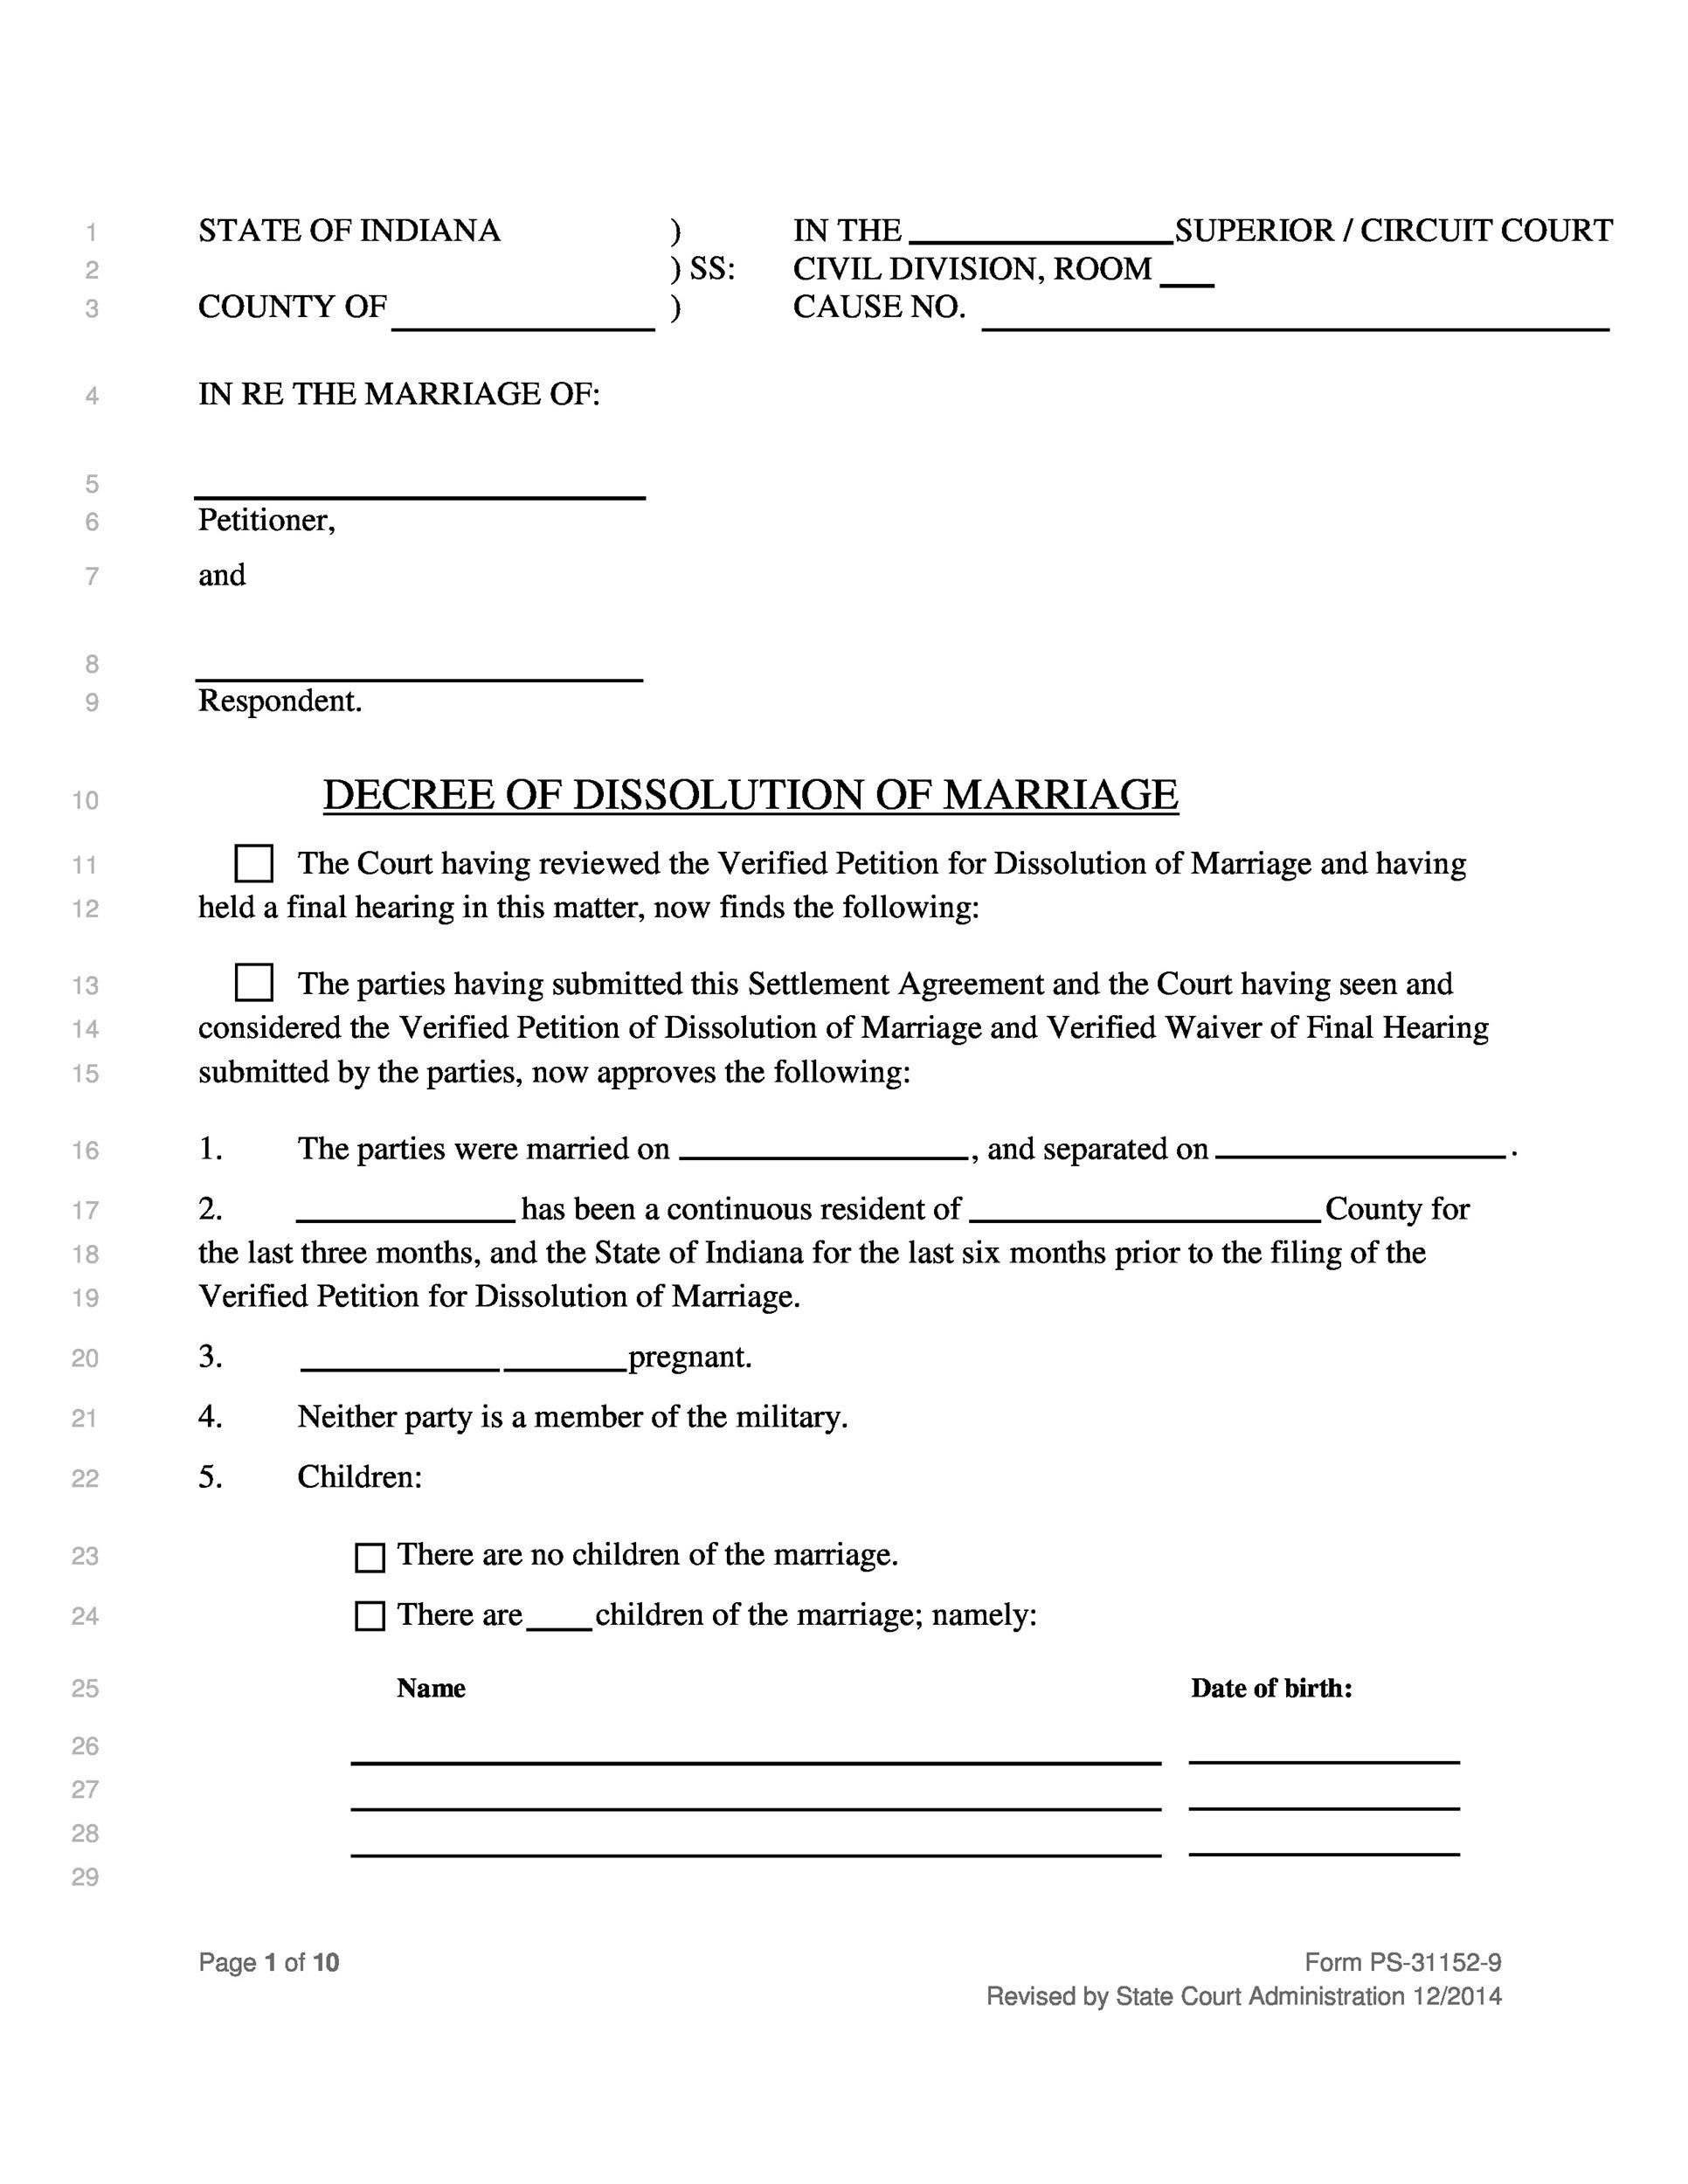 40 Free Divorce Papers Printable Template Lab – Printable Fake Divorce Papers